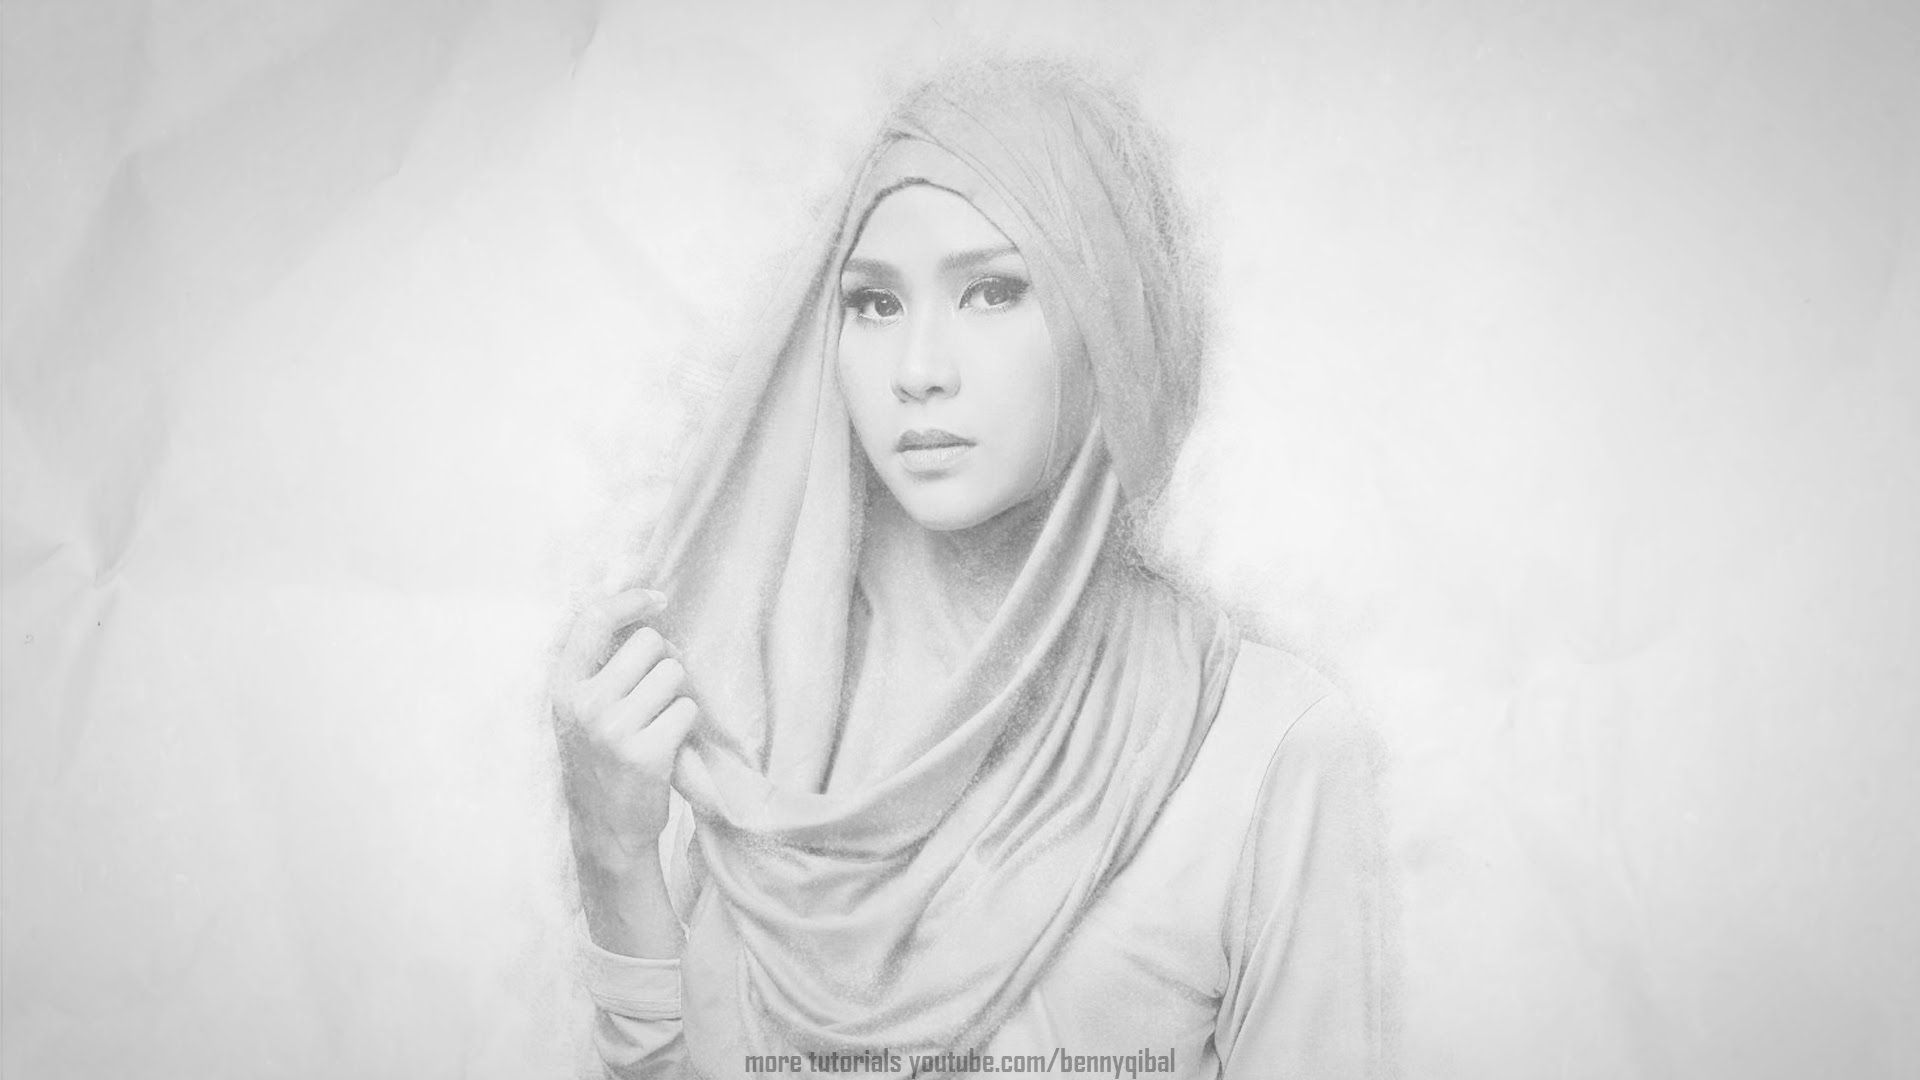 Pencil sketch effect photoshop tutorial watercolor pinterest pencil sketch effect photoshop tutorial baditri Image collections